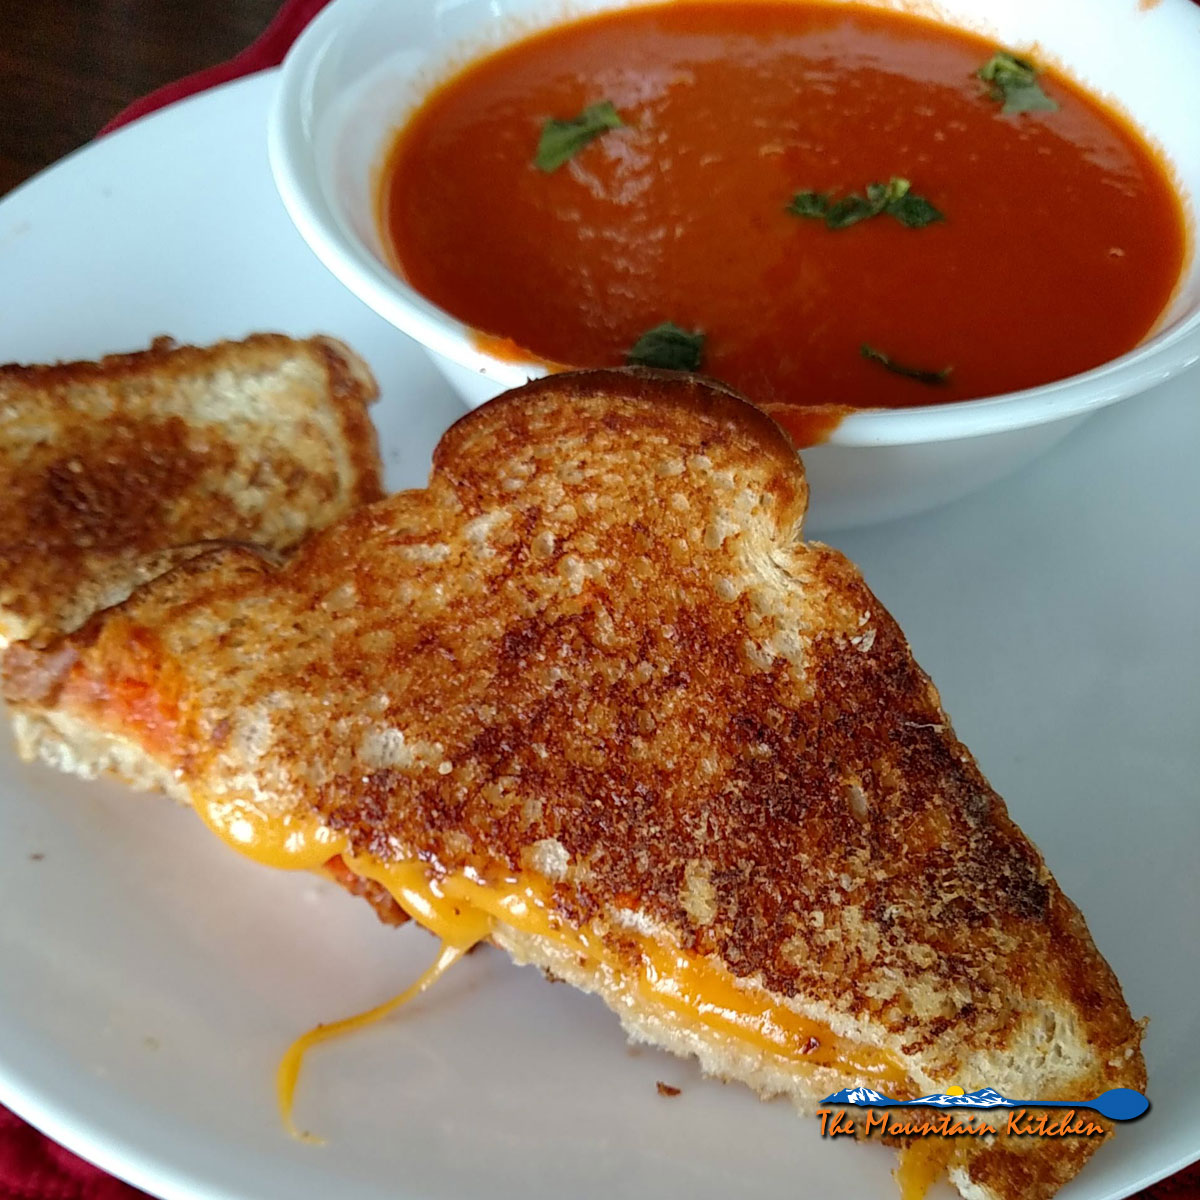 This Pioneer tomato soup is comfort food that is perfect paired with your favorite grilled cheese sandwich. Make a double batch and freeze for another day!